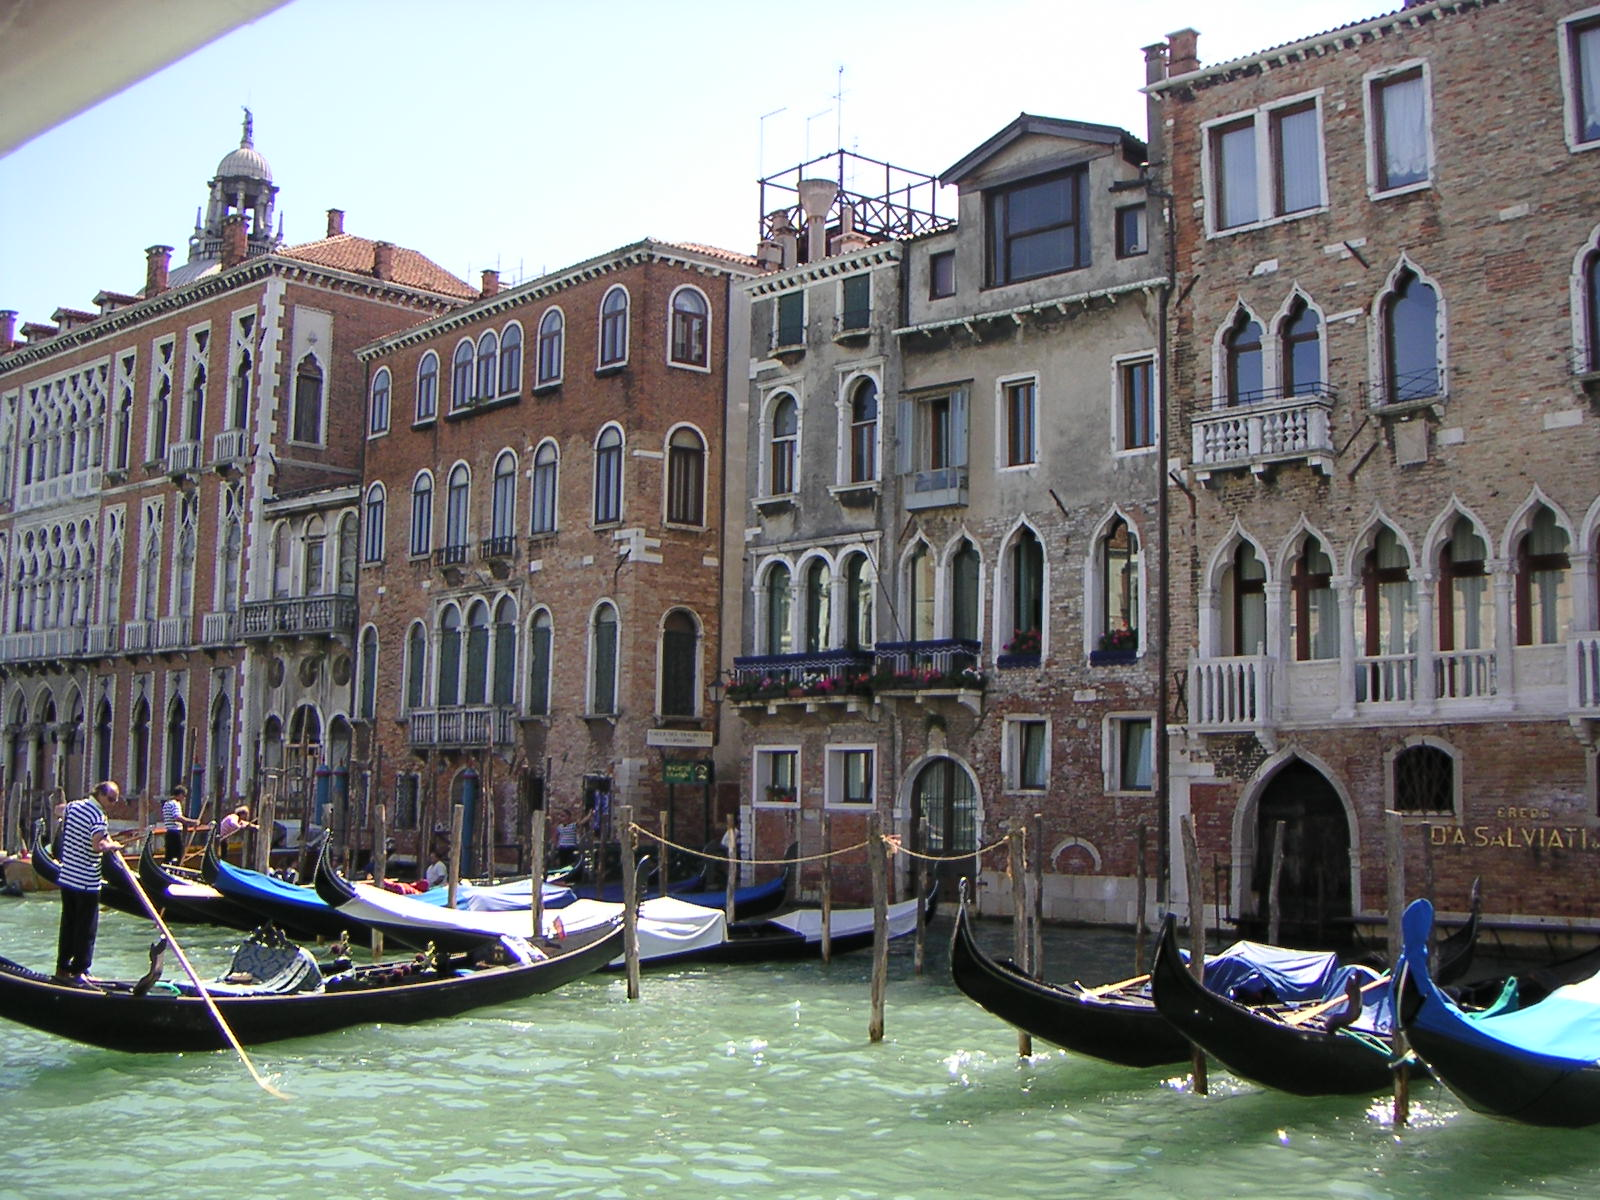 venetie online dating Find travel agency, historical places, hotels, resorts, restaurants, upcoming events, festival, movies, travel agency, attorneys, doctors, jobs, real estate market and local weather forecast.